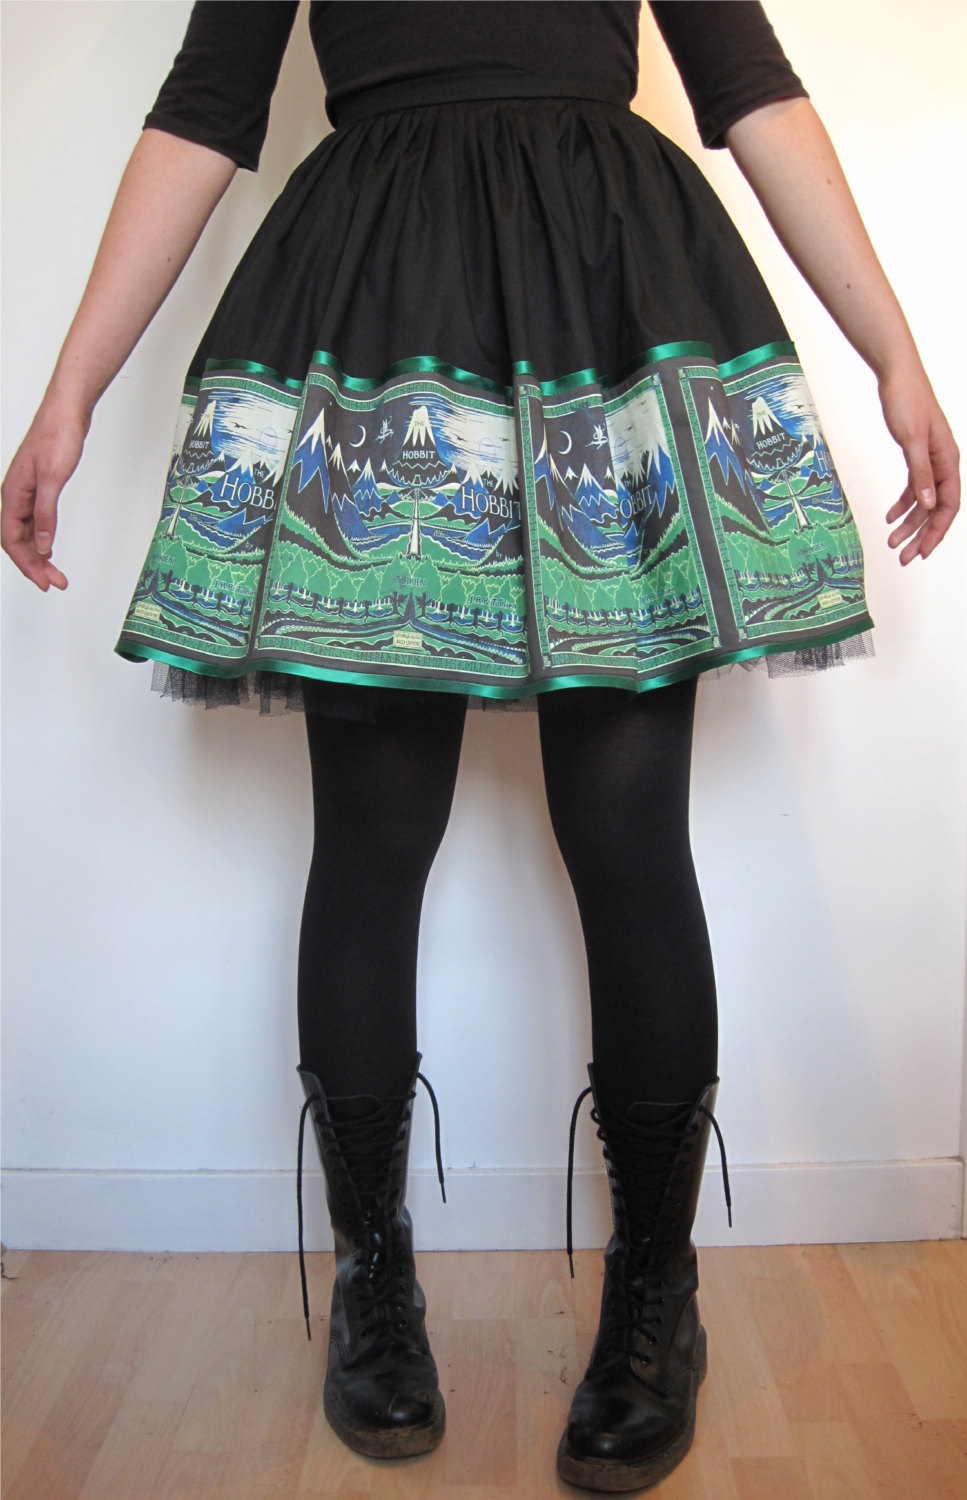 Nerdy shirts, skirts and dresses from Frockasaurus